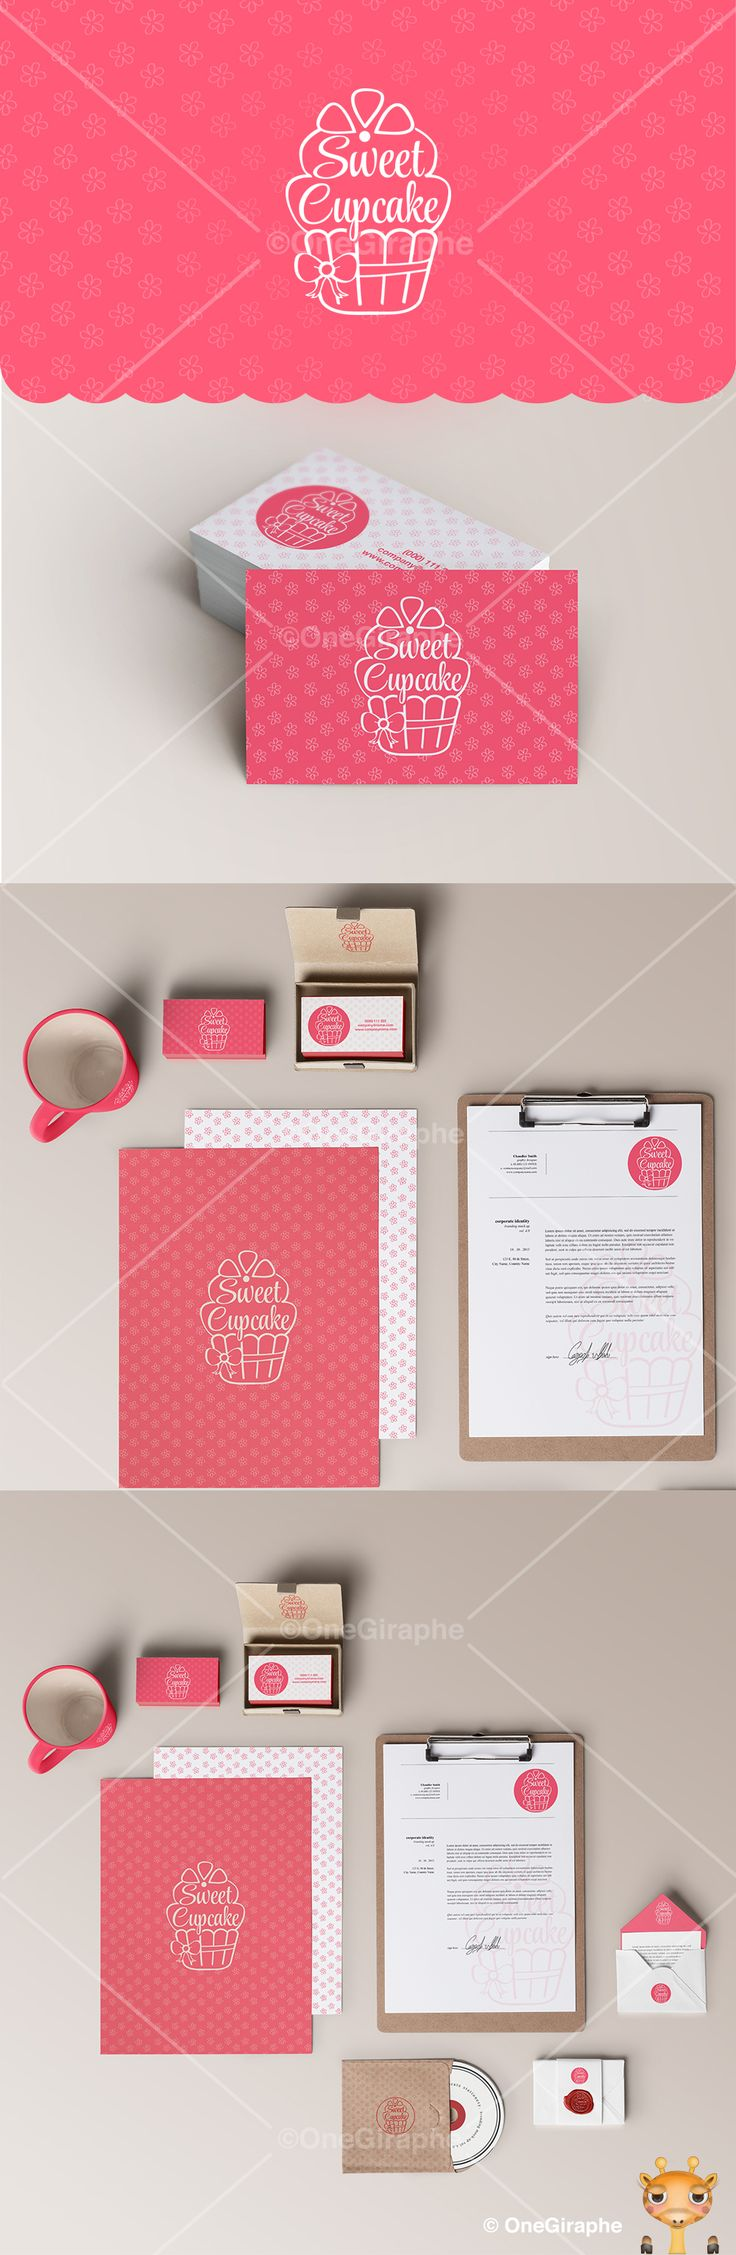 20 best logo images on Pinterest   Business cards, Advertising and ...